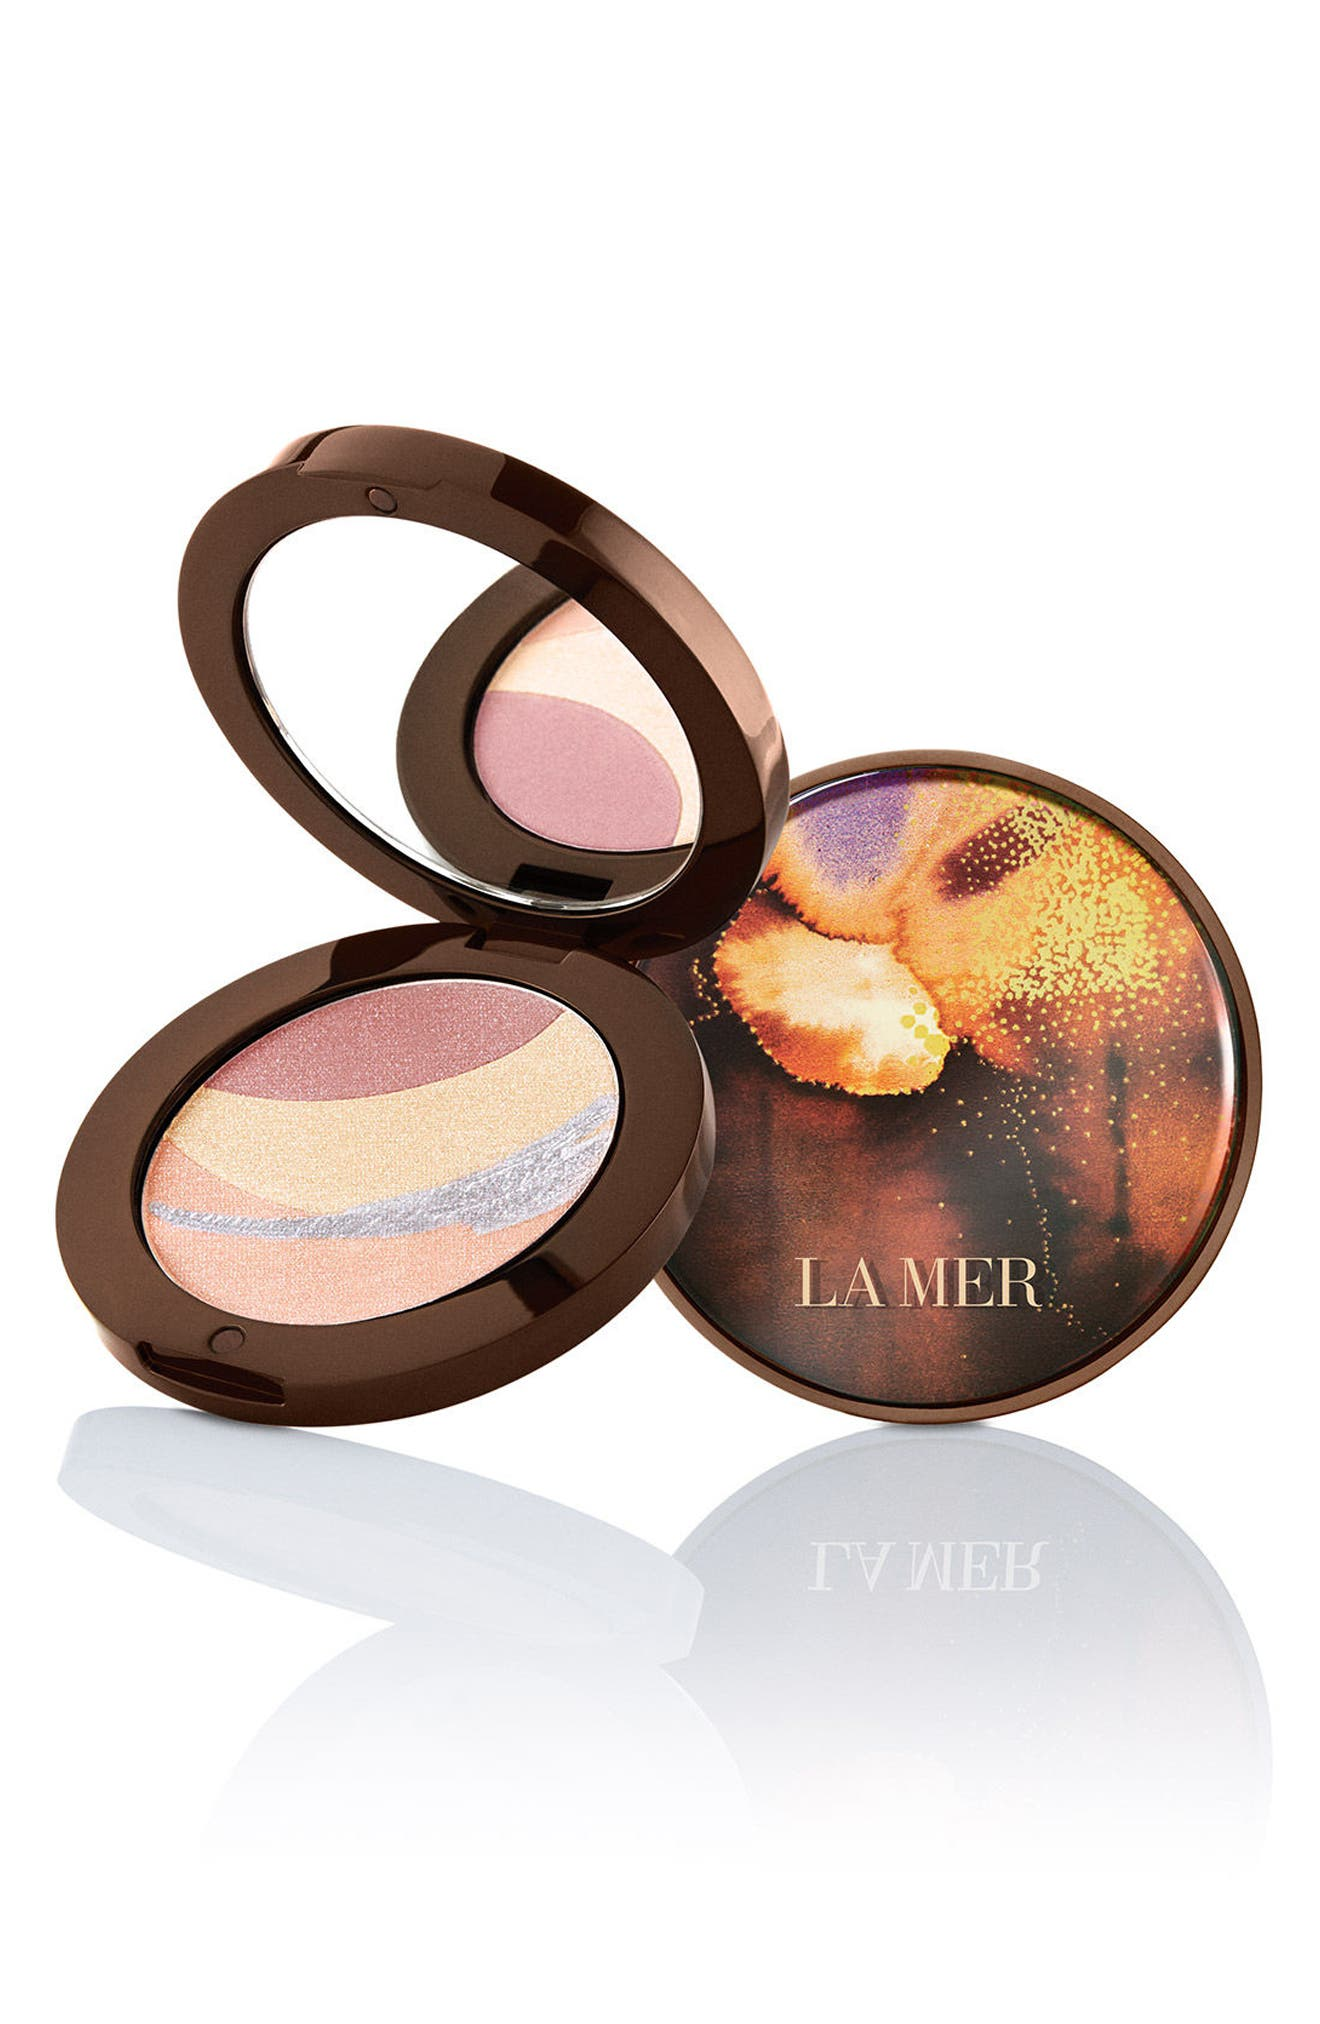 La Mer The Illuminating Powder (Limited Edition)